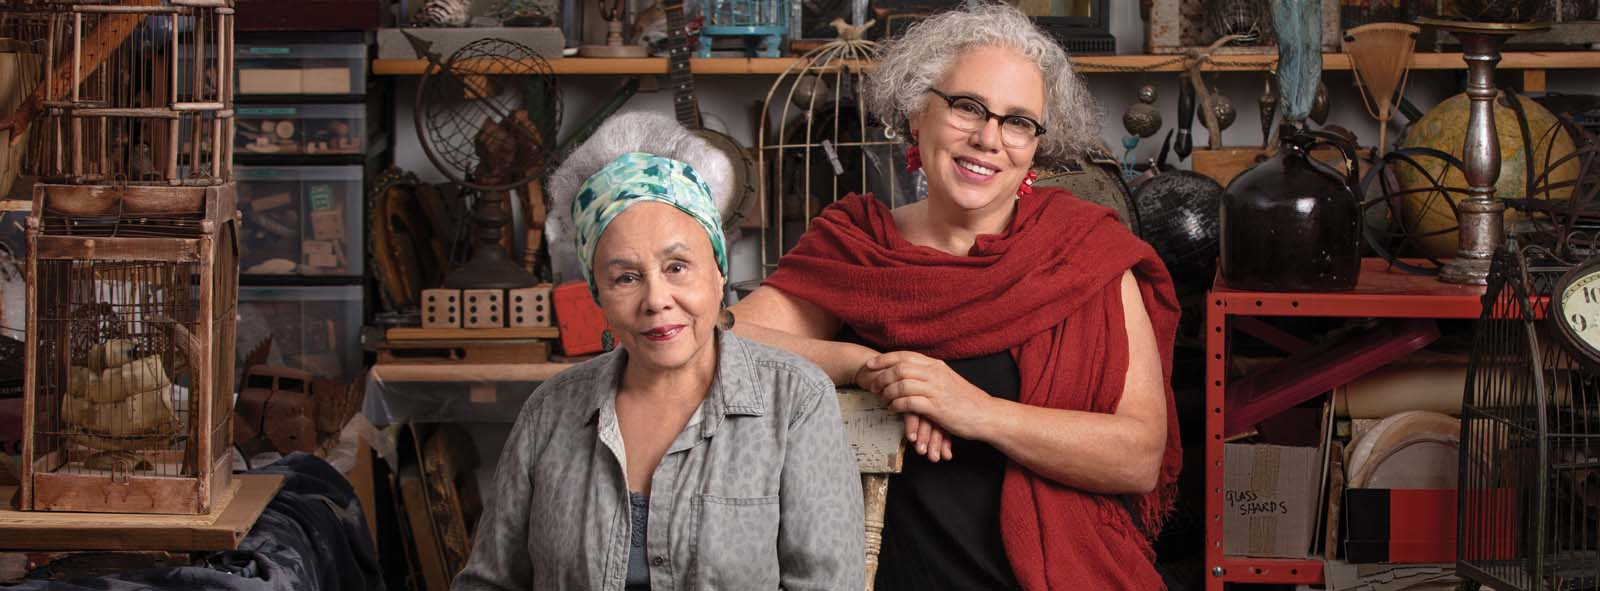 Image of First Republic Arts client(s) Betye and Alison Saar